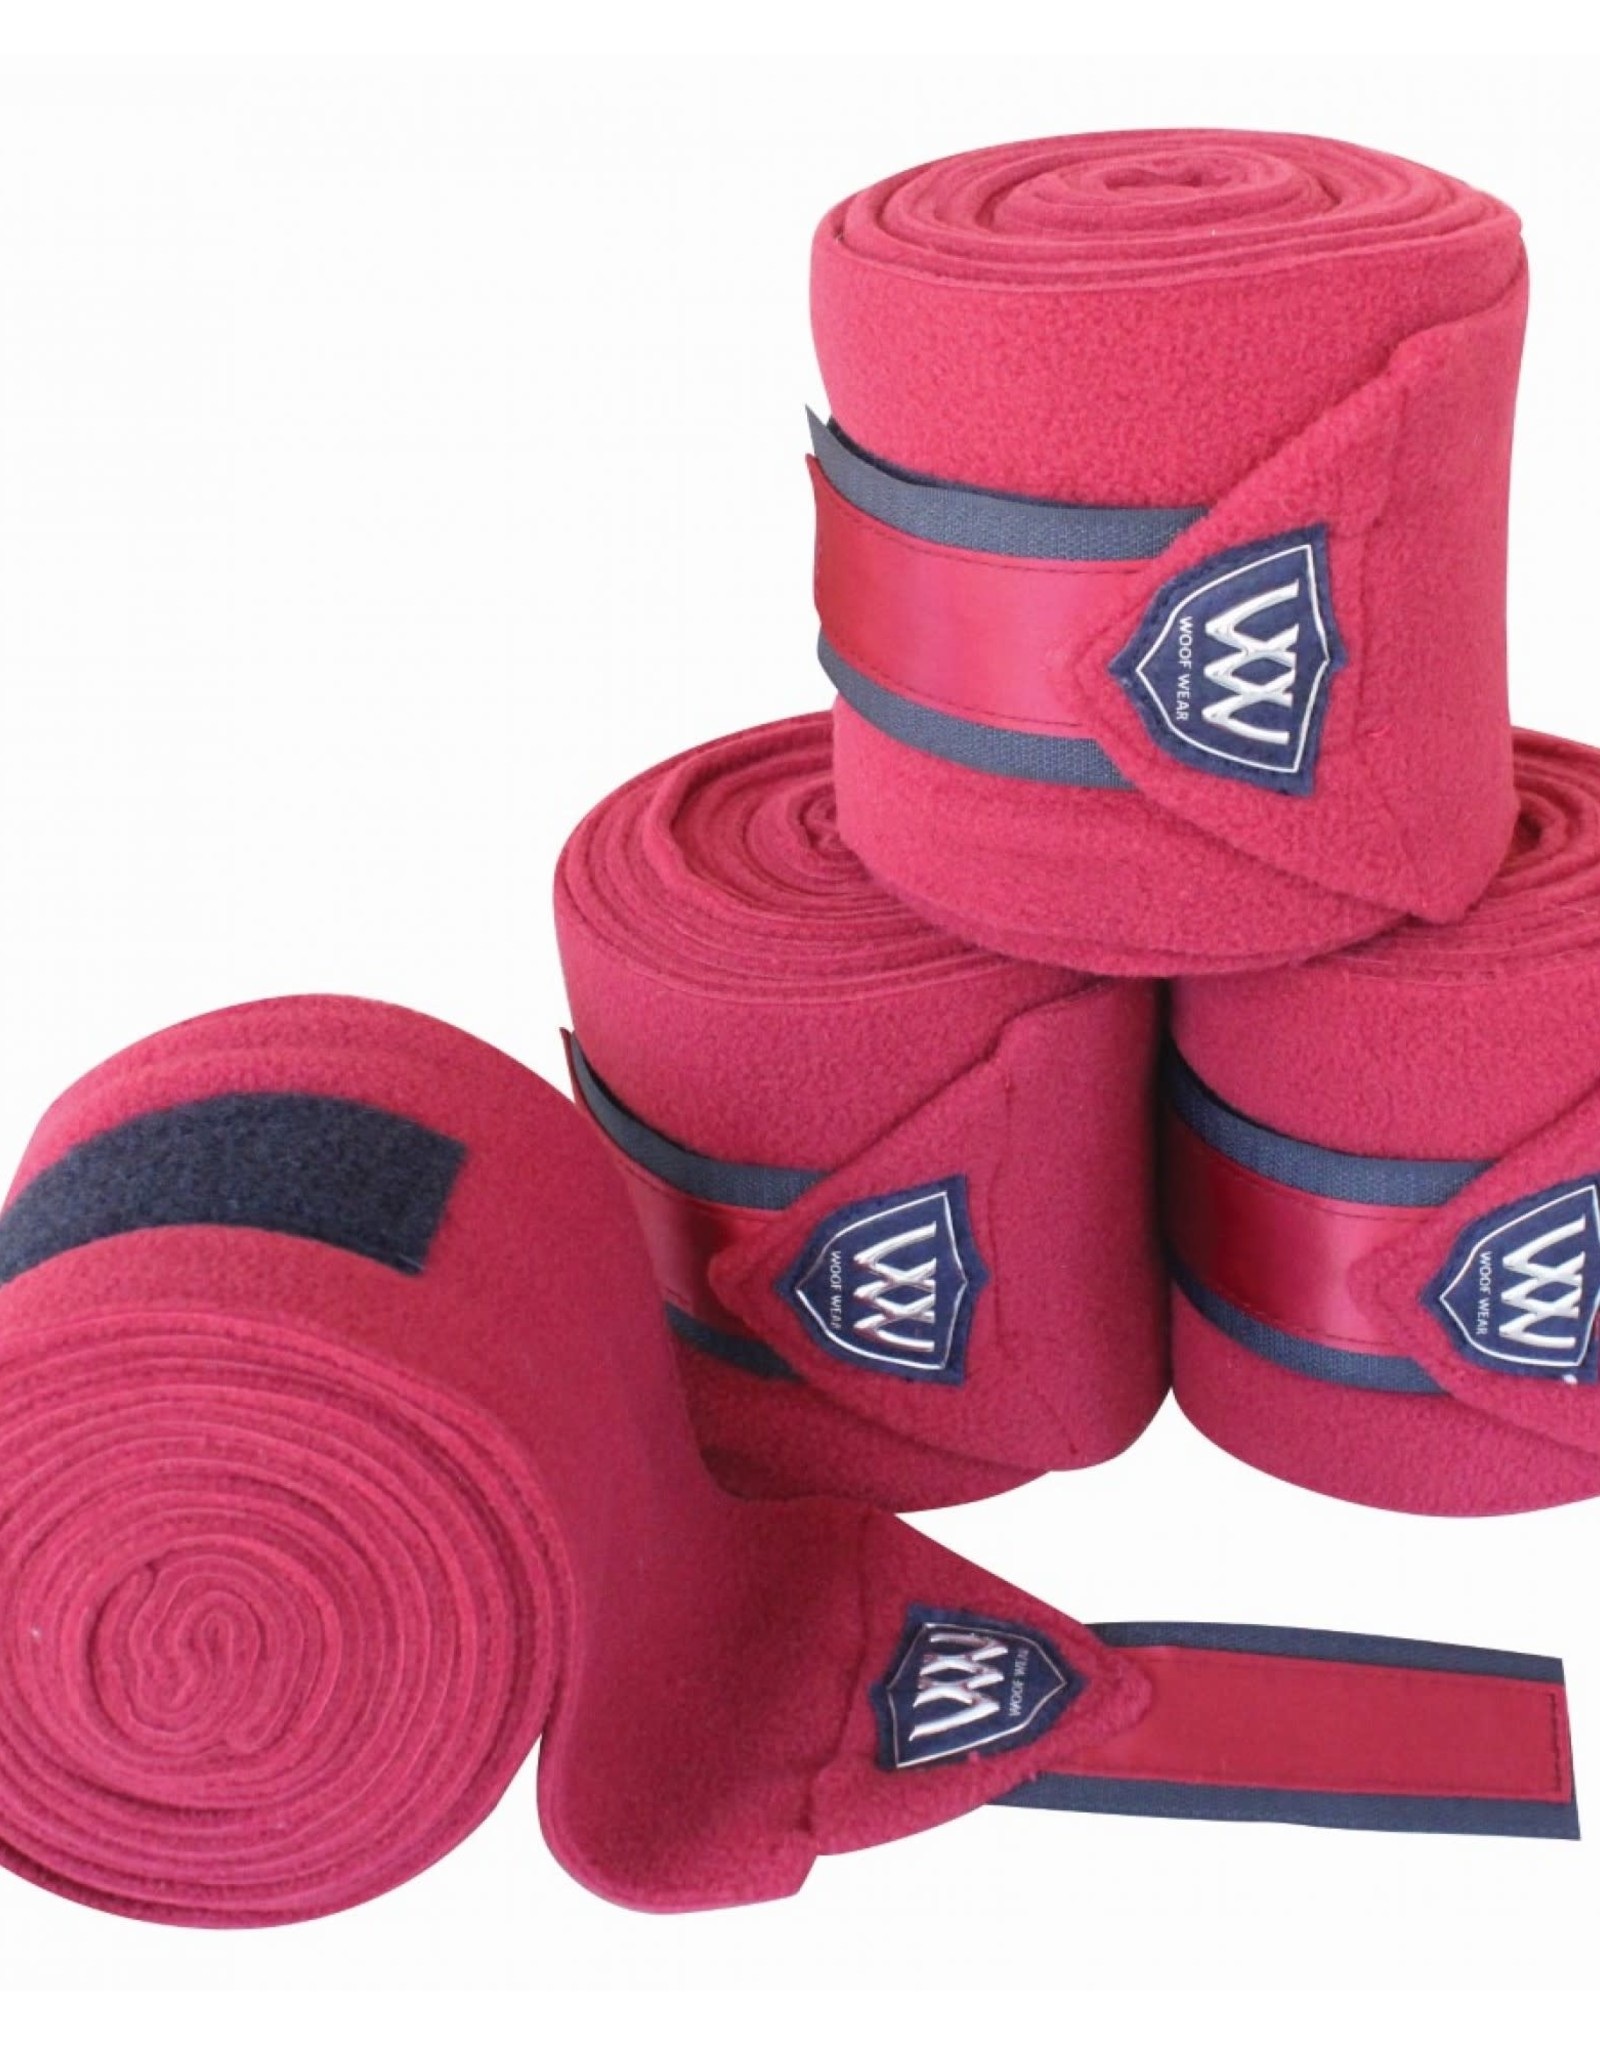 WOOF WEAR VISION POLO BANDAGES, 4/PACK